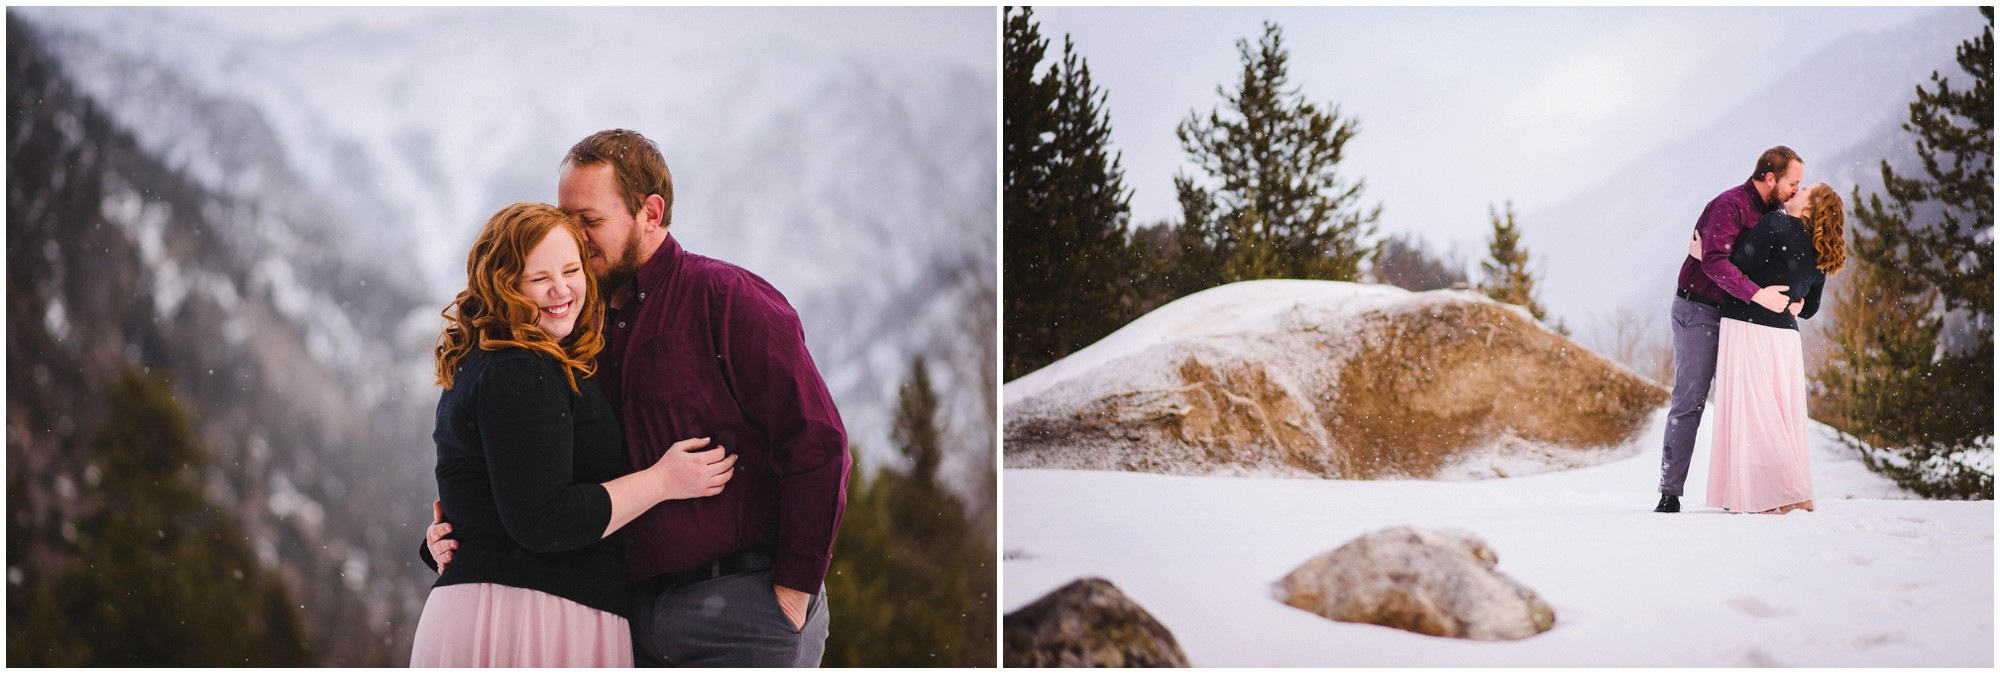 127-Copper-mountain-winter-engagement-photography.jpg